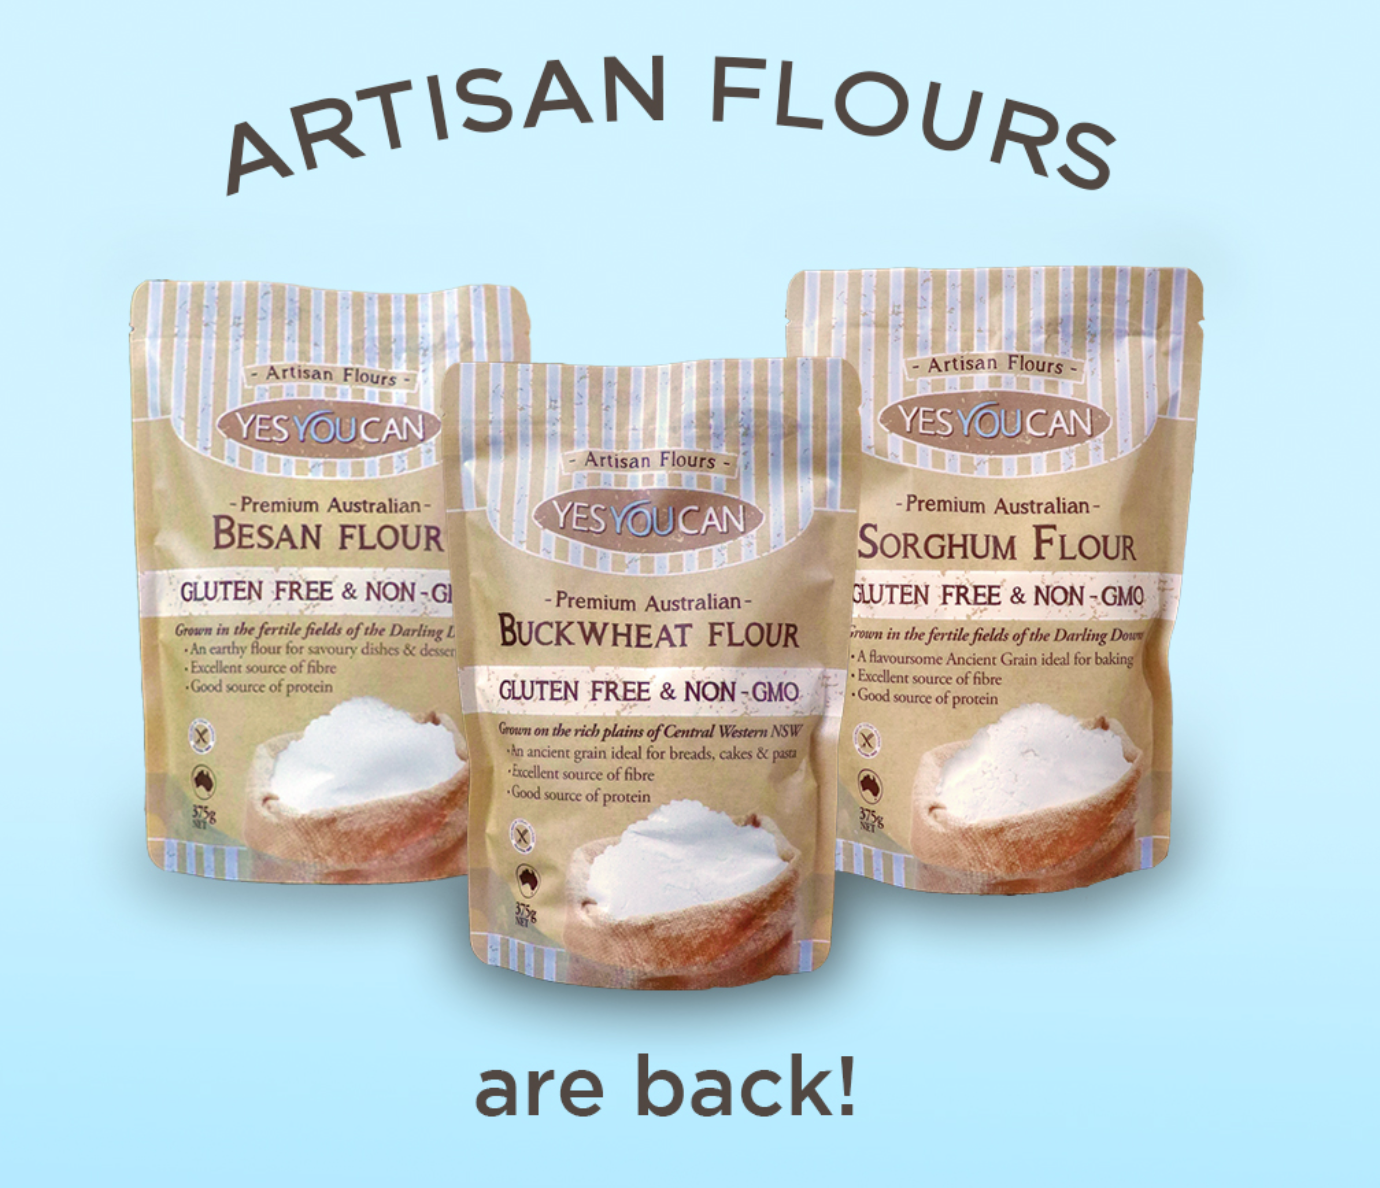 Return of Australian flours announcement